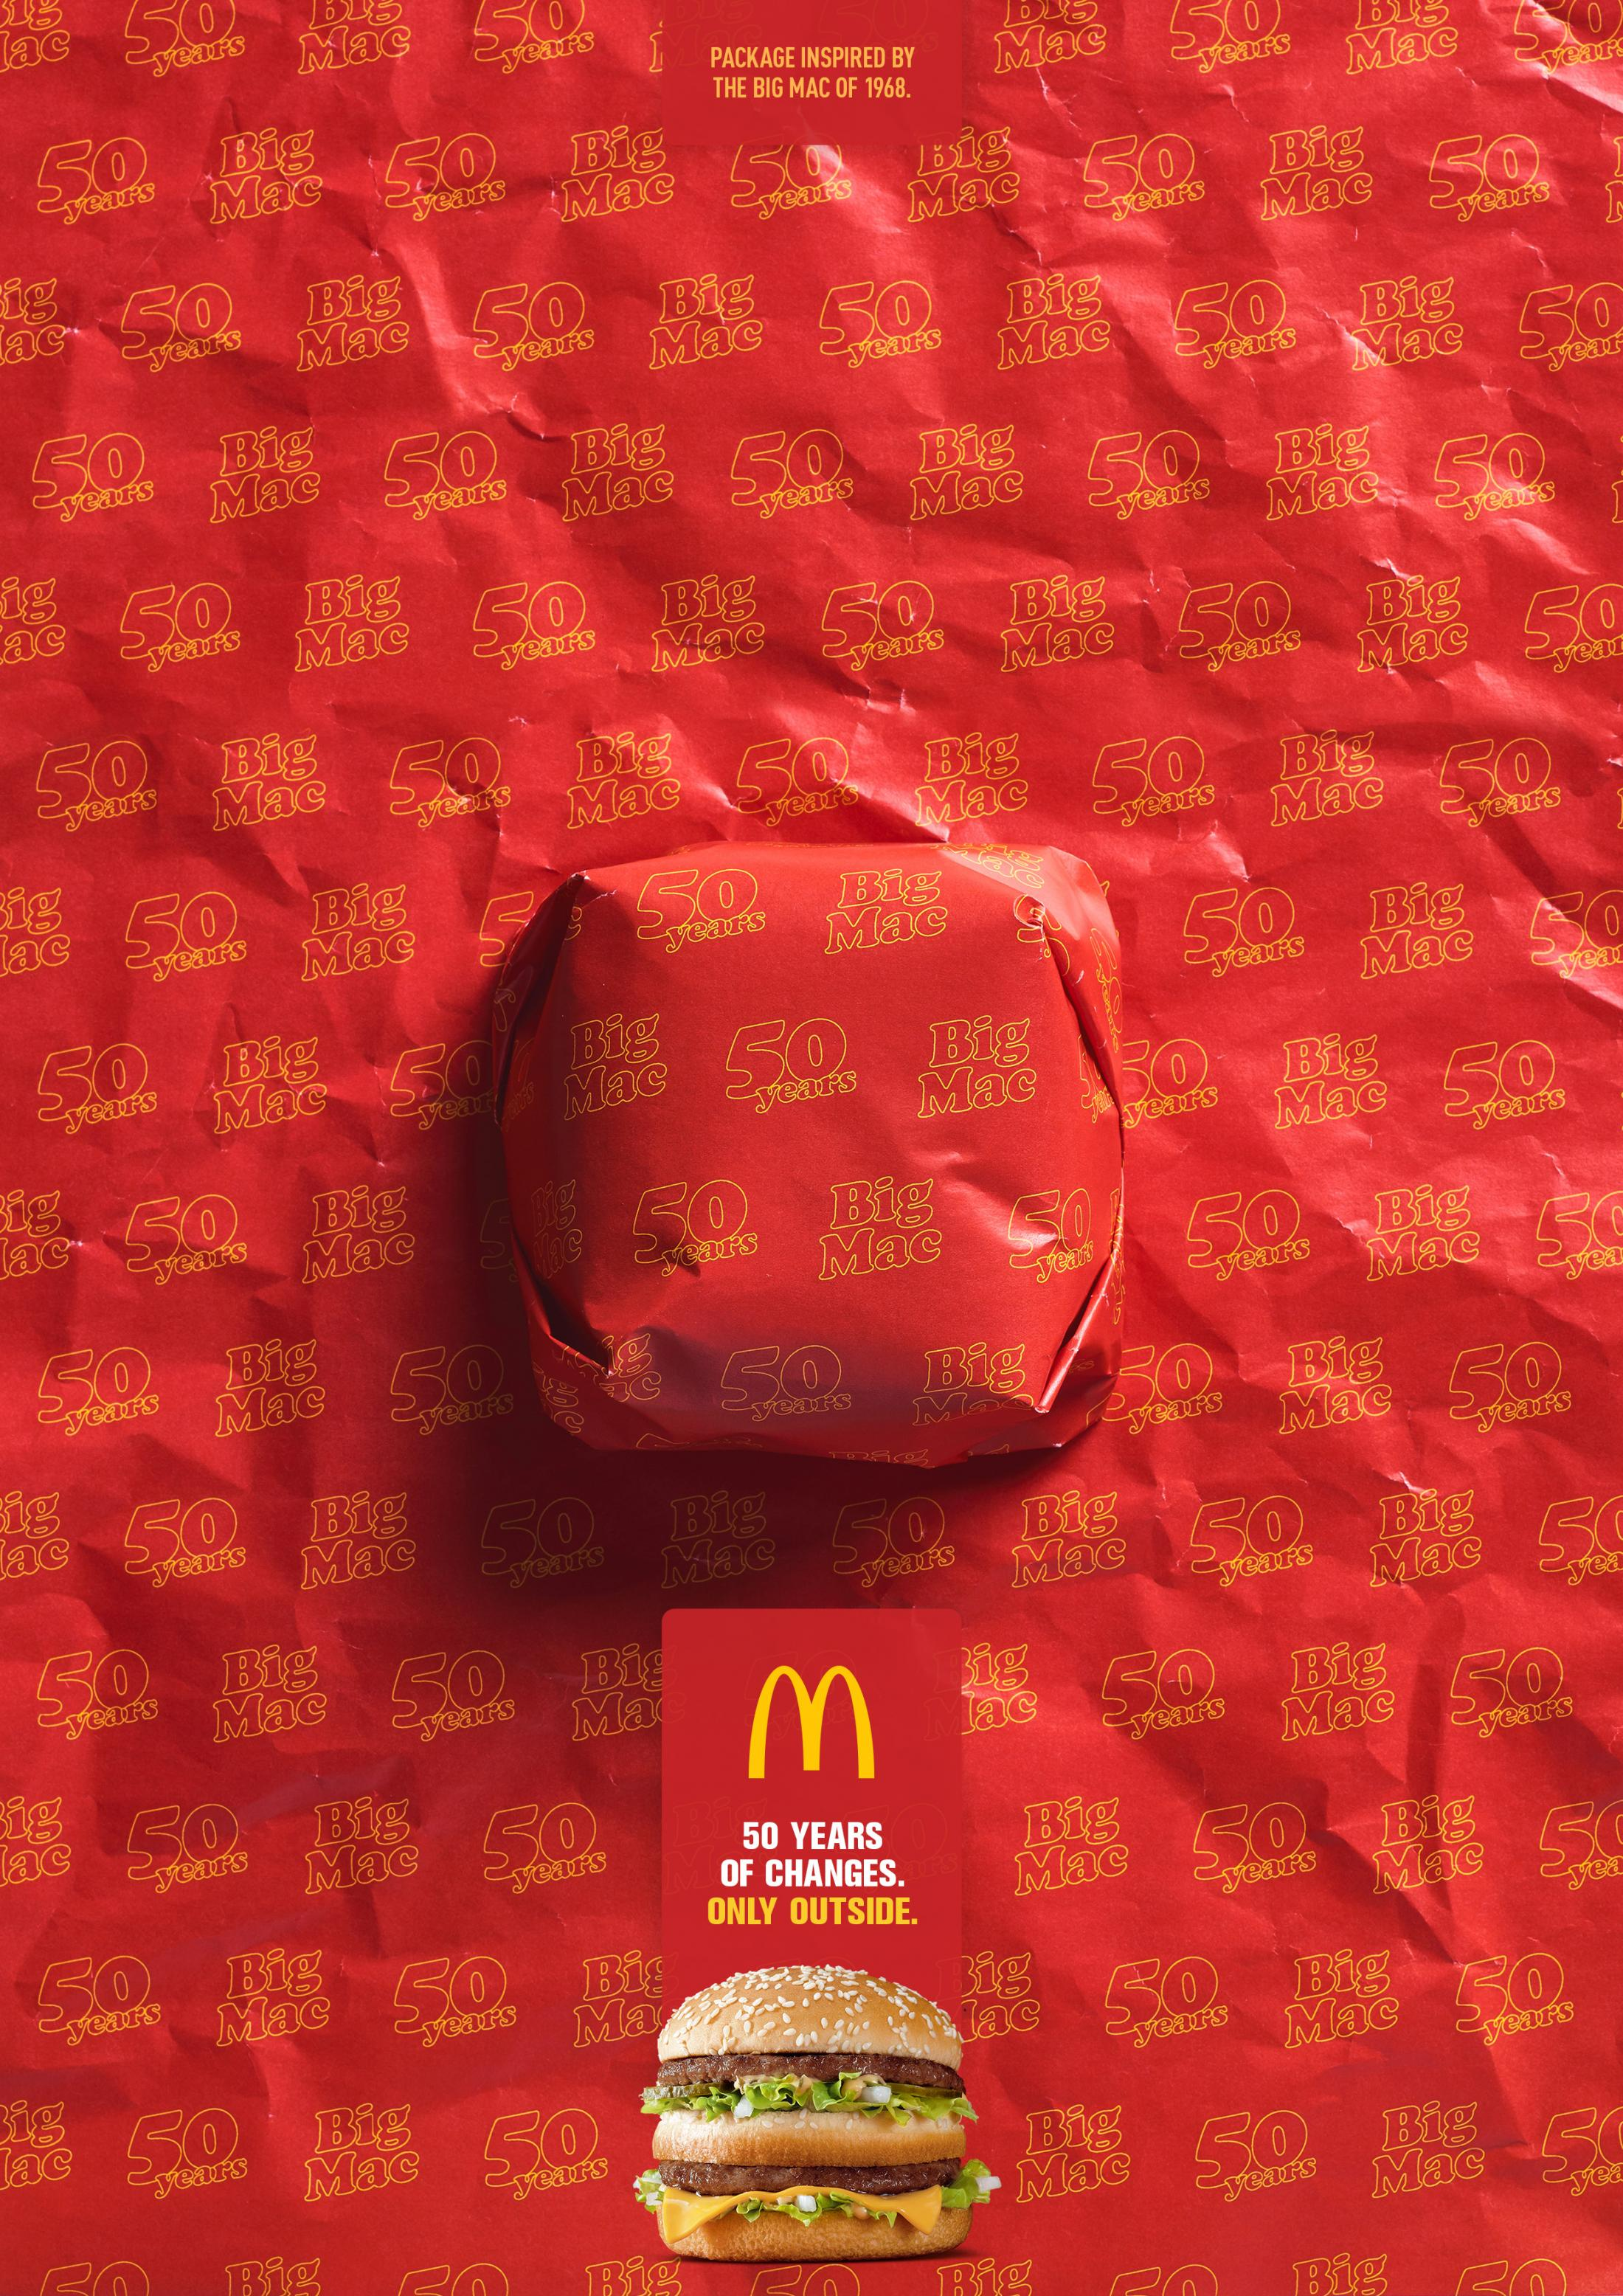 McDonald's Print Ad - Big Mac - Packed in History - 1968